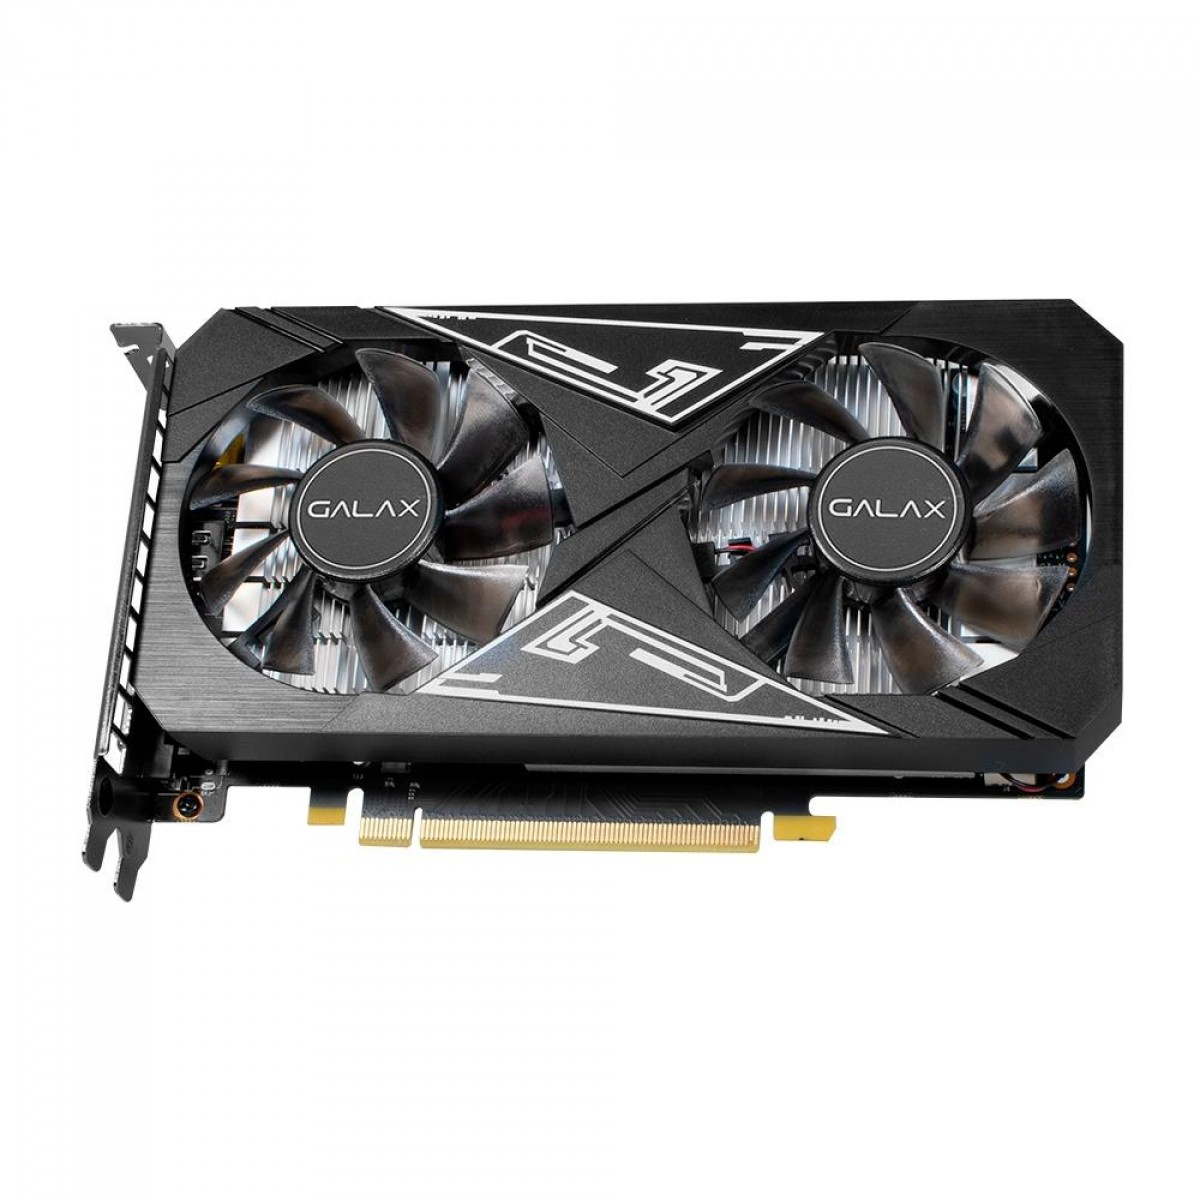 Placa de Vídeo Galax, GeForce, GTX 1650 EX PLUS, 4GB, 1-Click OC, GDDR6, 128-bit, 65SQL8DS93E1